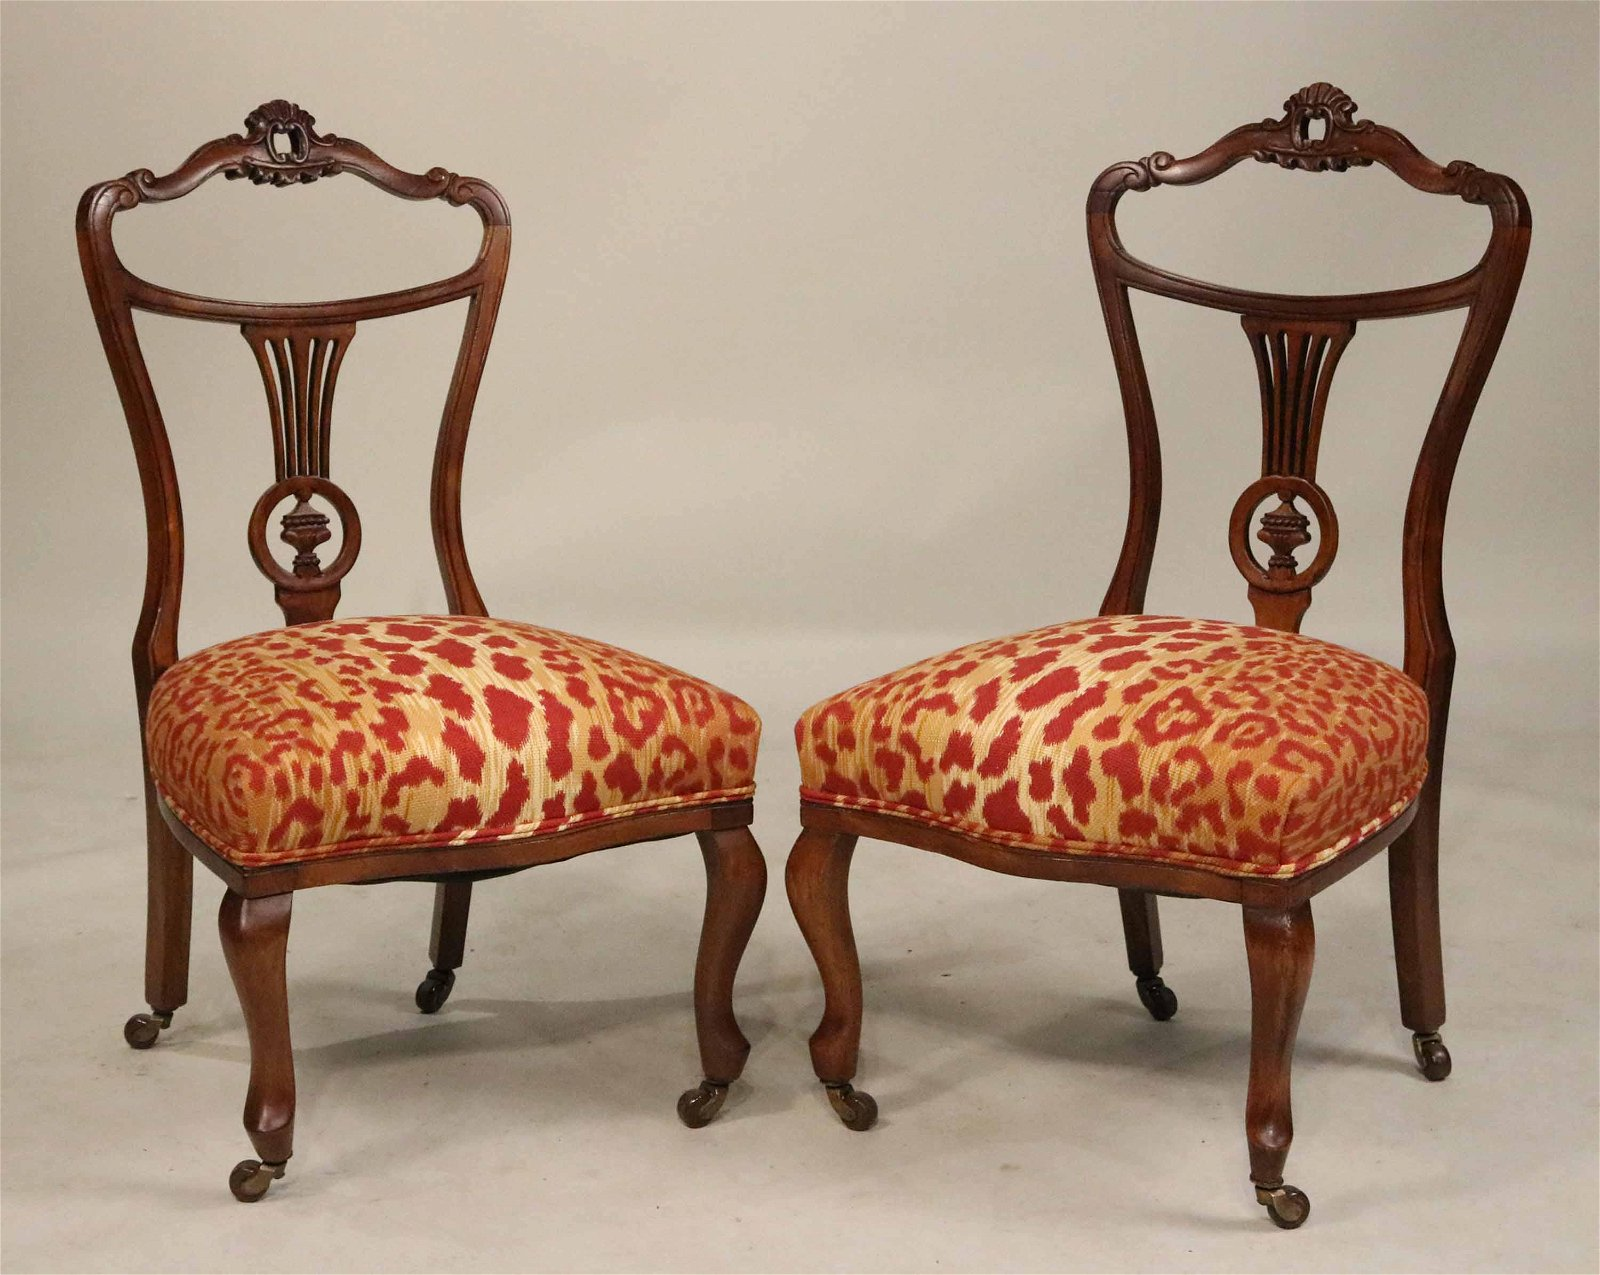 Pair of Victorian Style Mahogany Parlor Chairs